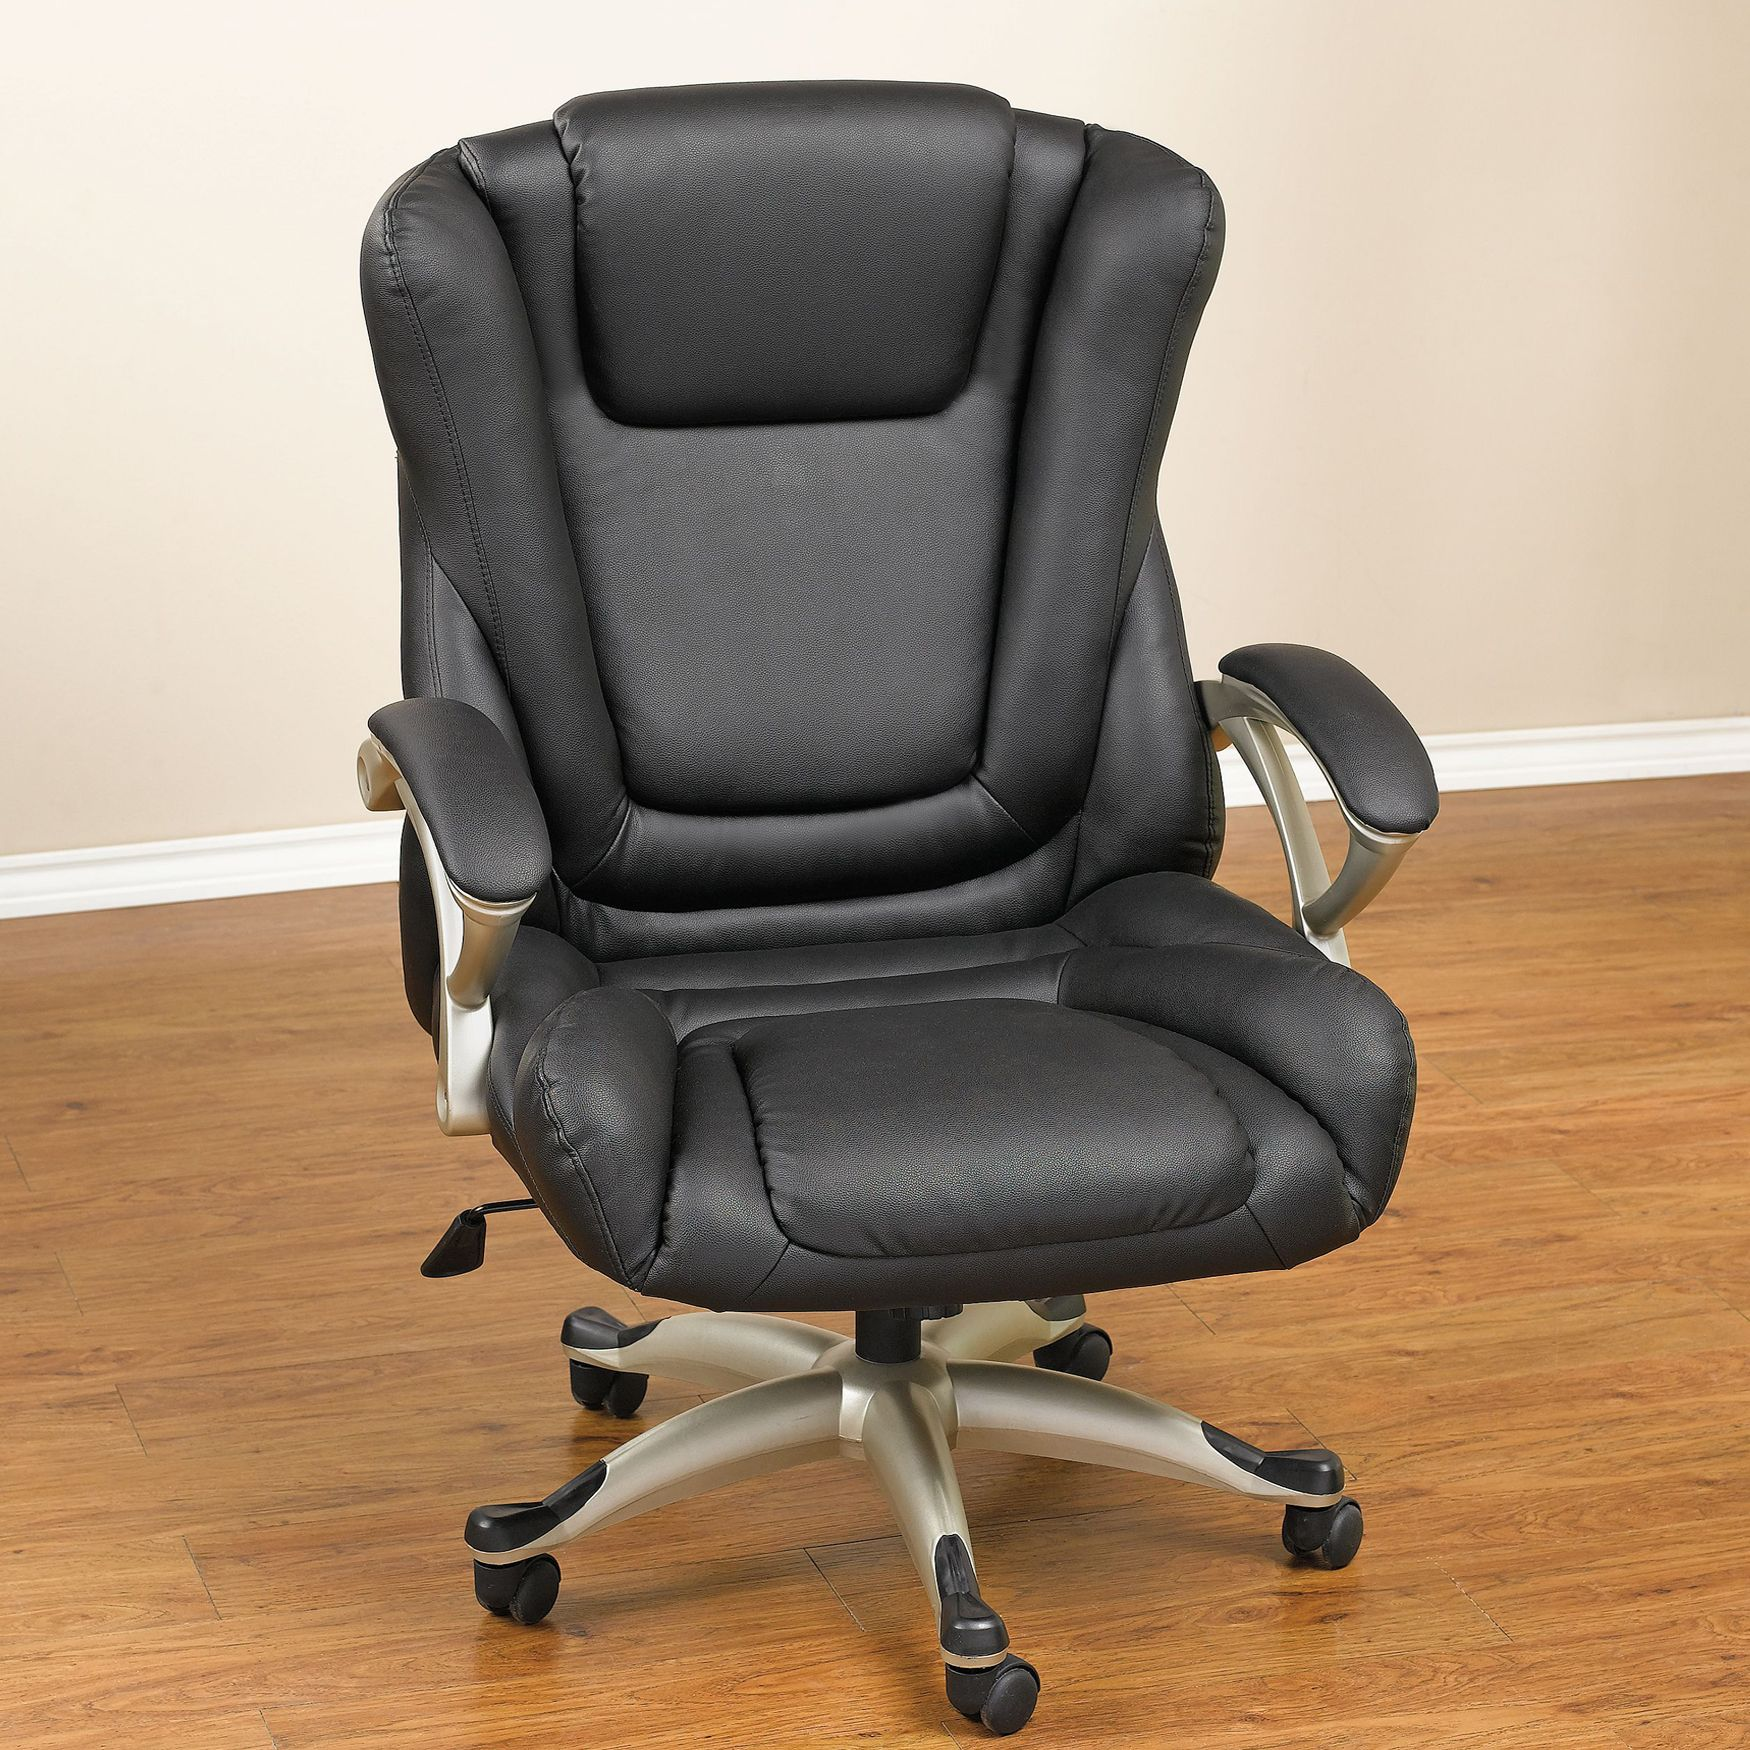 Extra Wide Deluxe Executive Padded Office Chair Plus Size Chairs